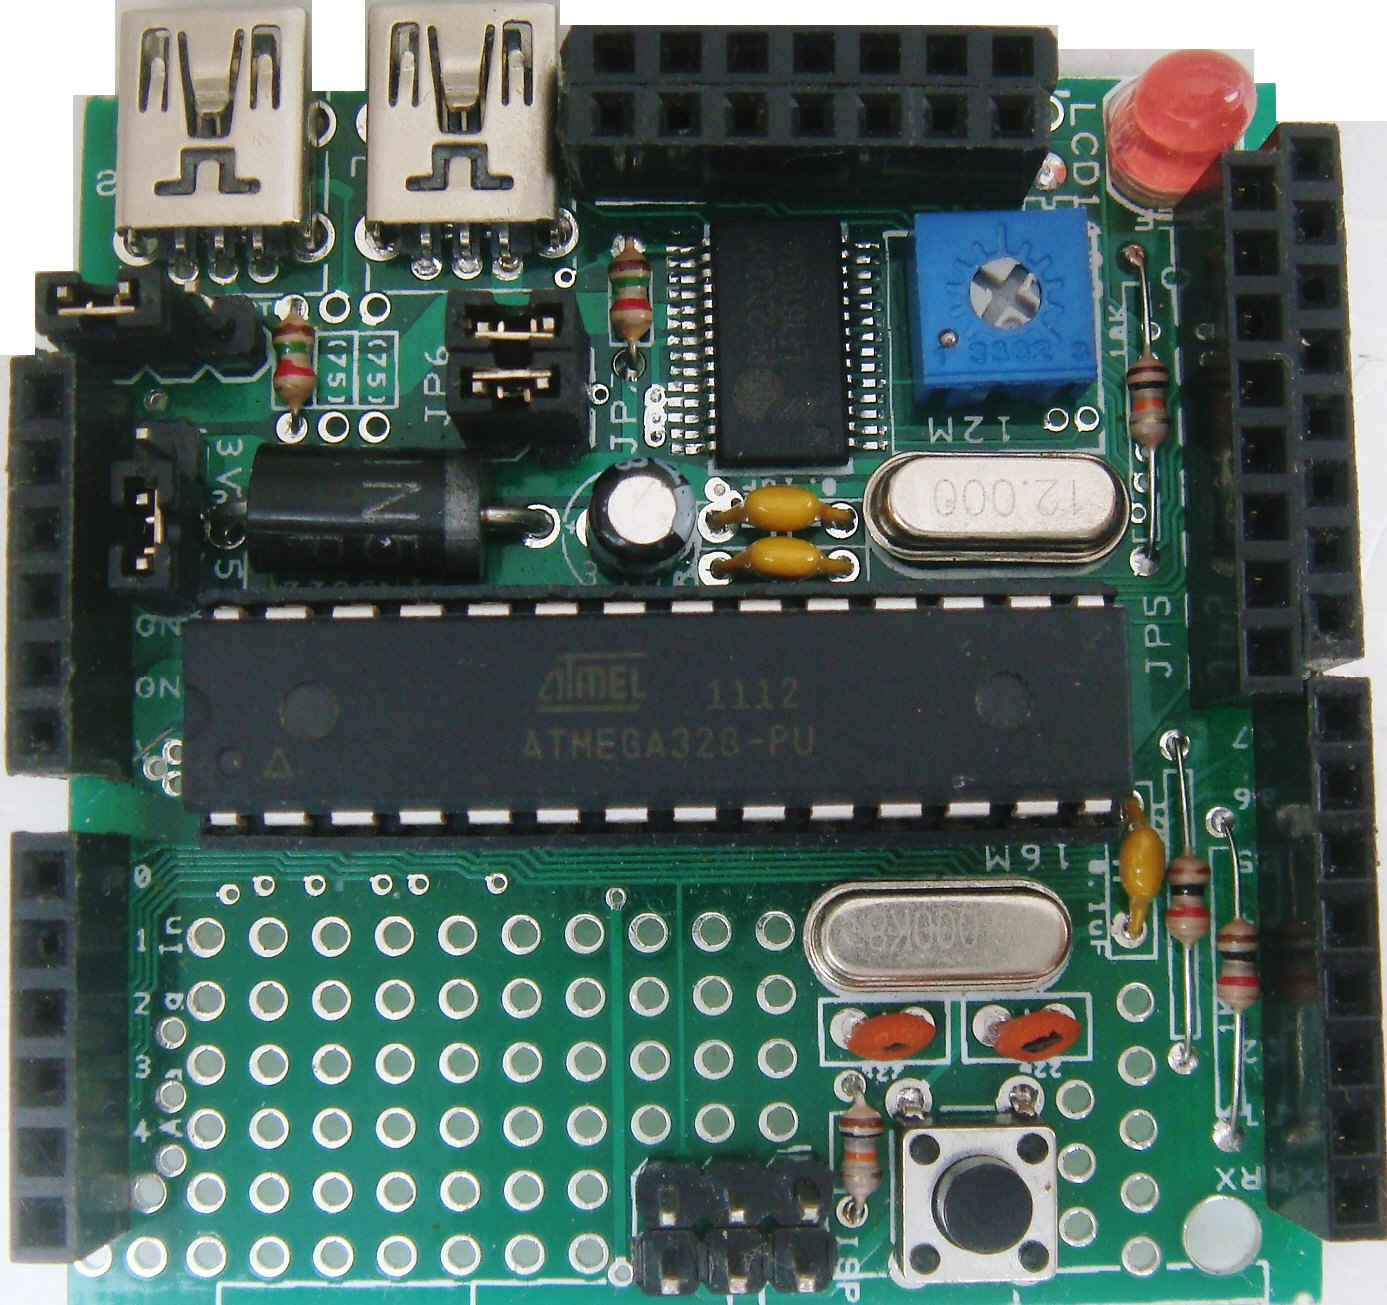 List of arduino compatibles